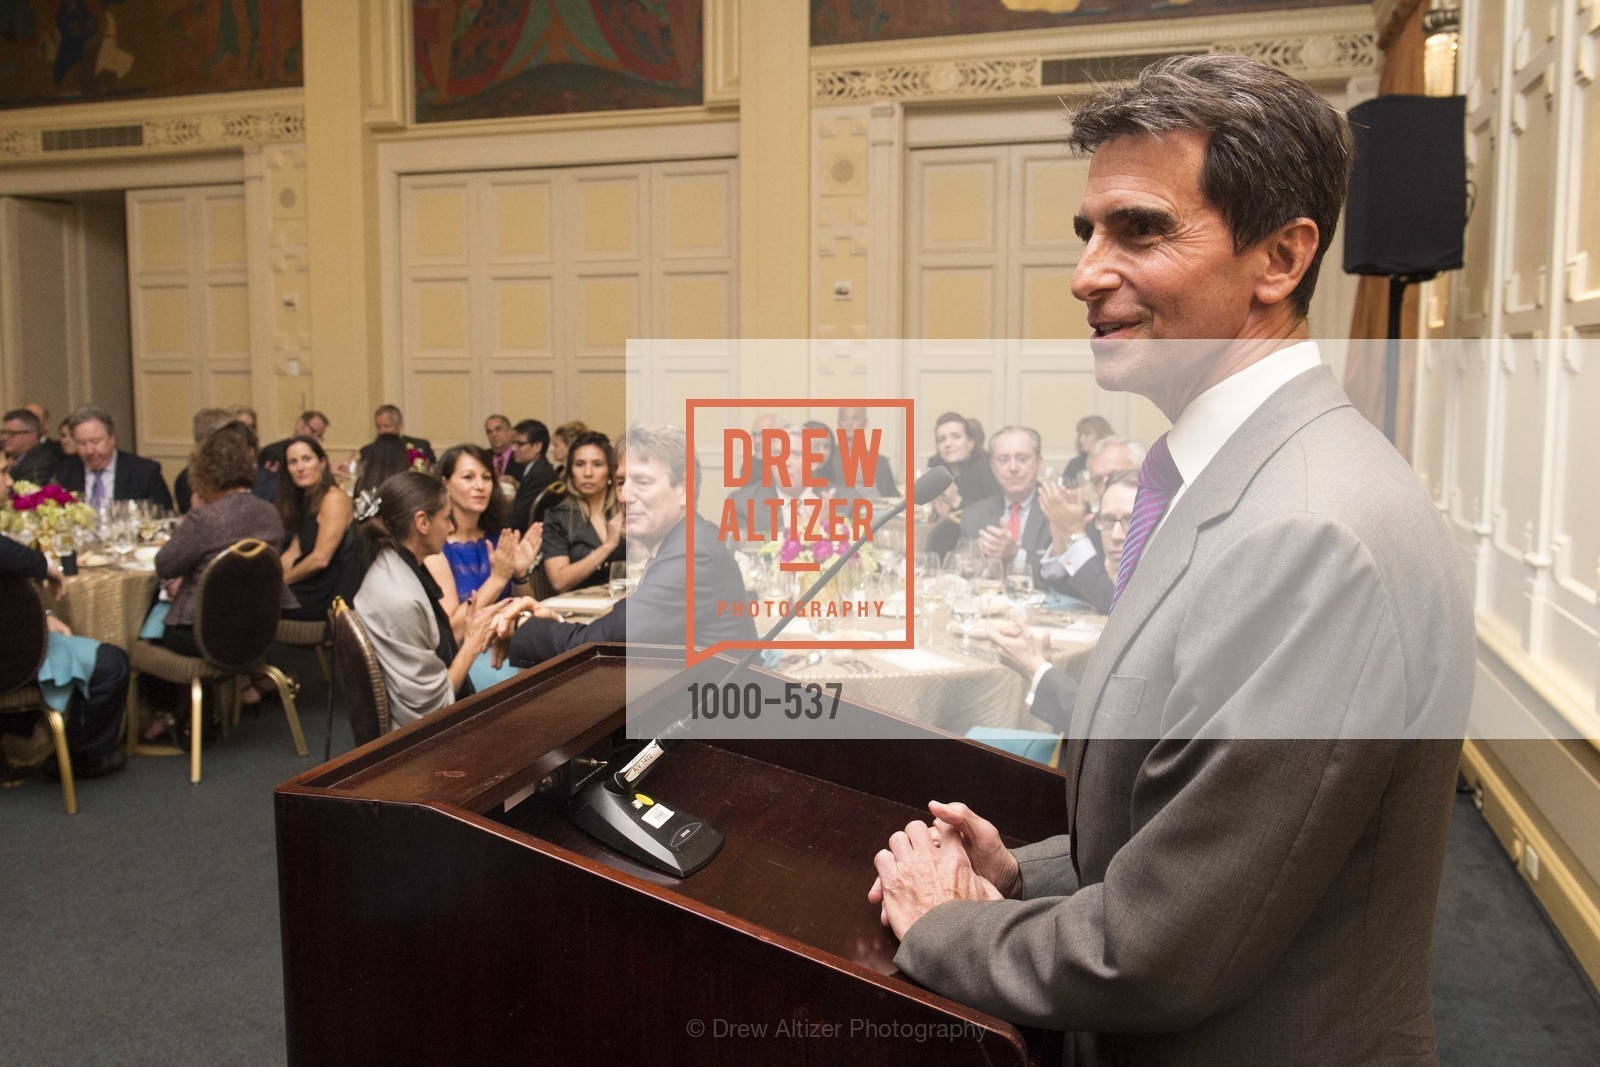 Mark Leno, TOP OF THE MARK'S 75TH Anniversary Party, US, November 6th, 2014,Drew Altizer, Drew Altizer Photography, full-service agency, private events, San Francisco photographer, photographer california